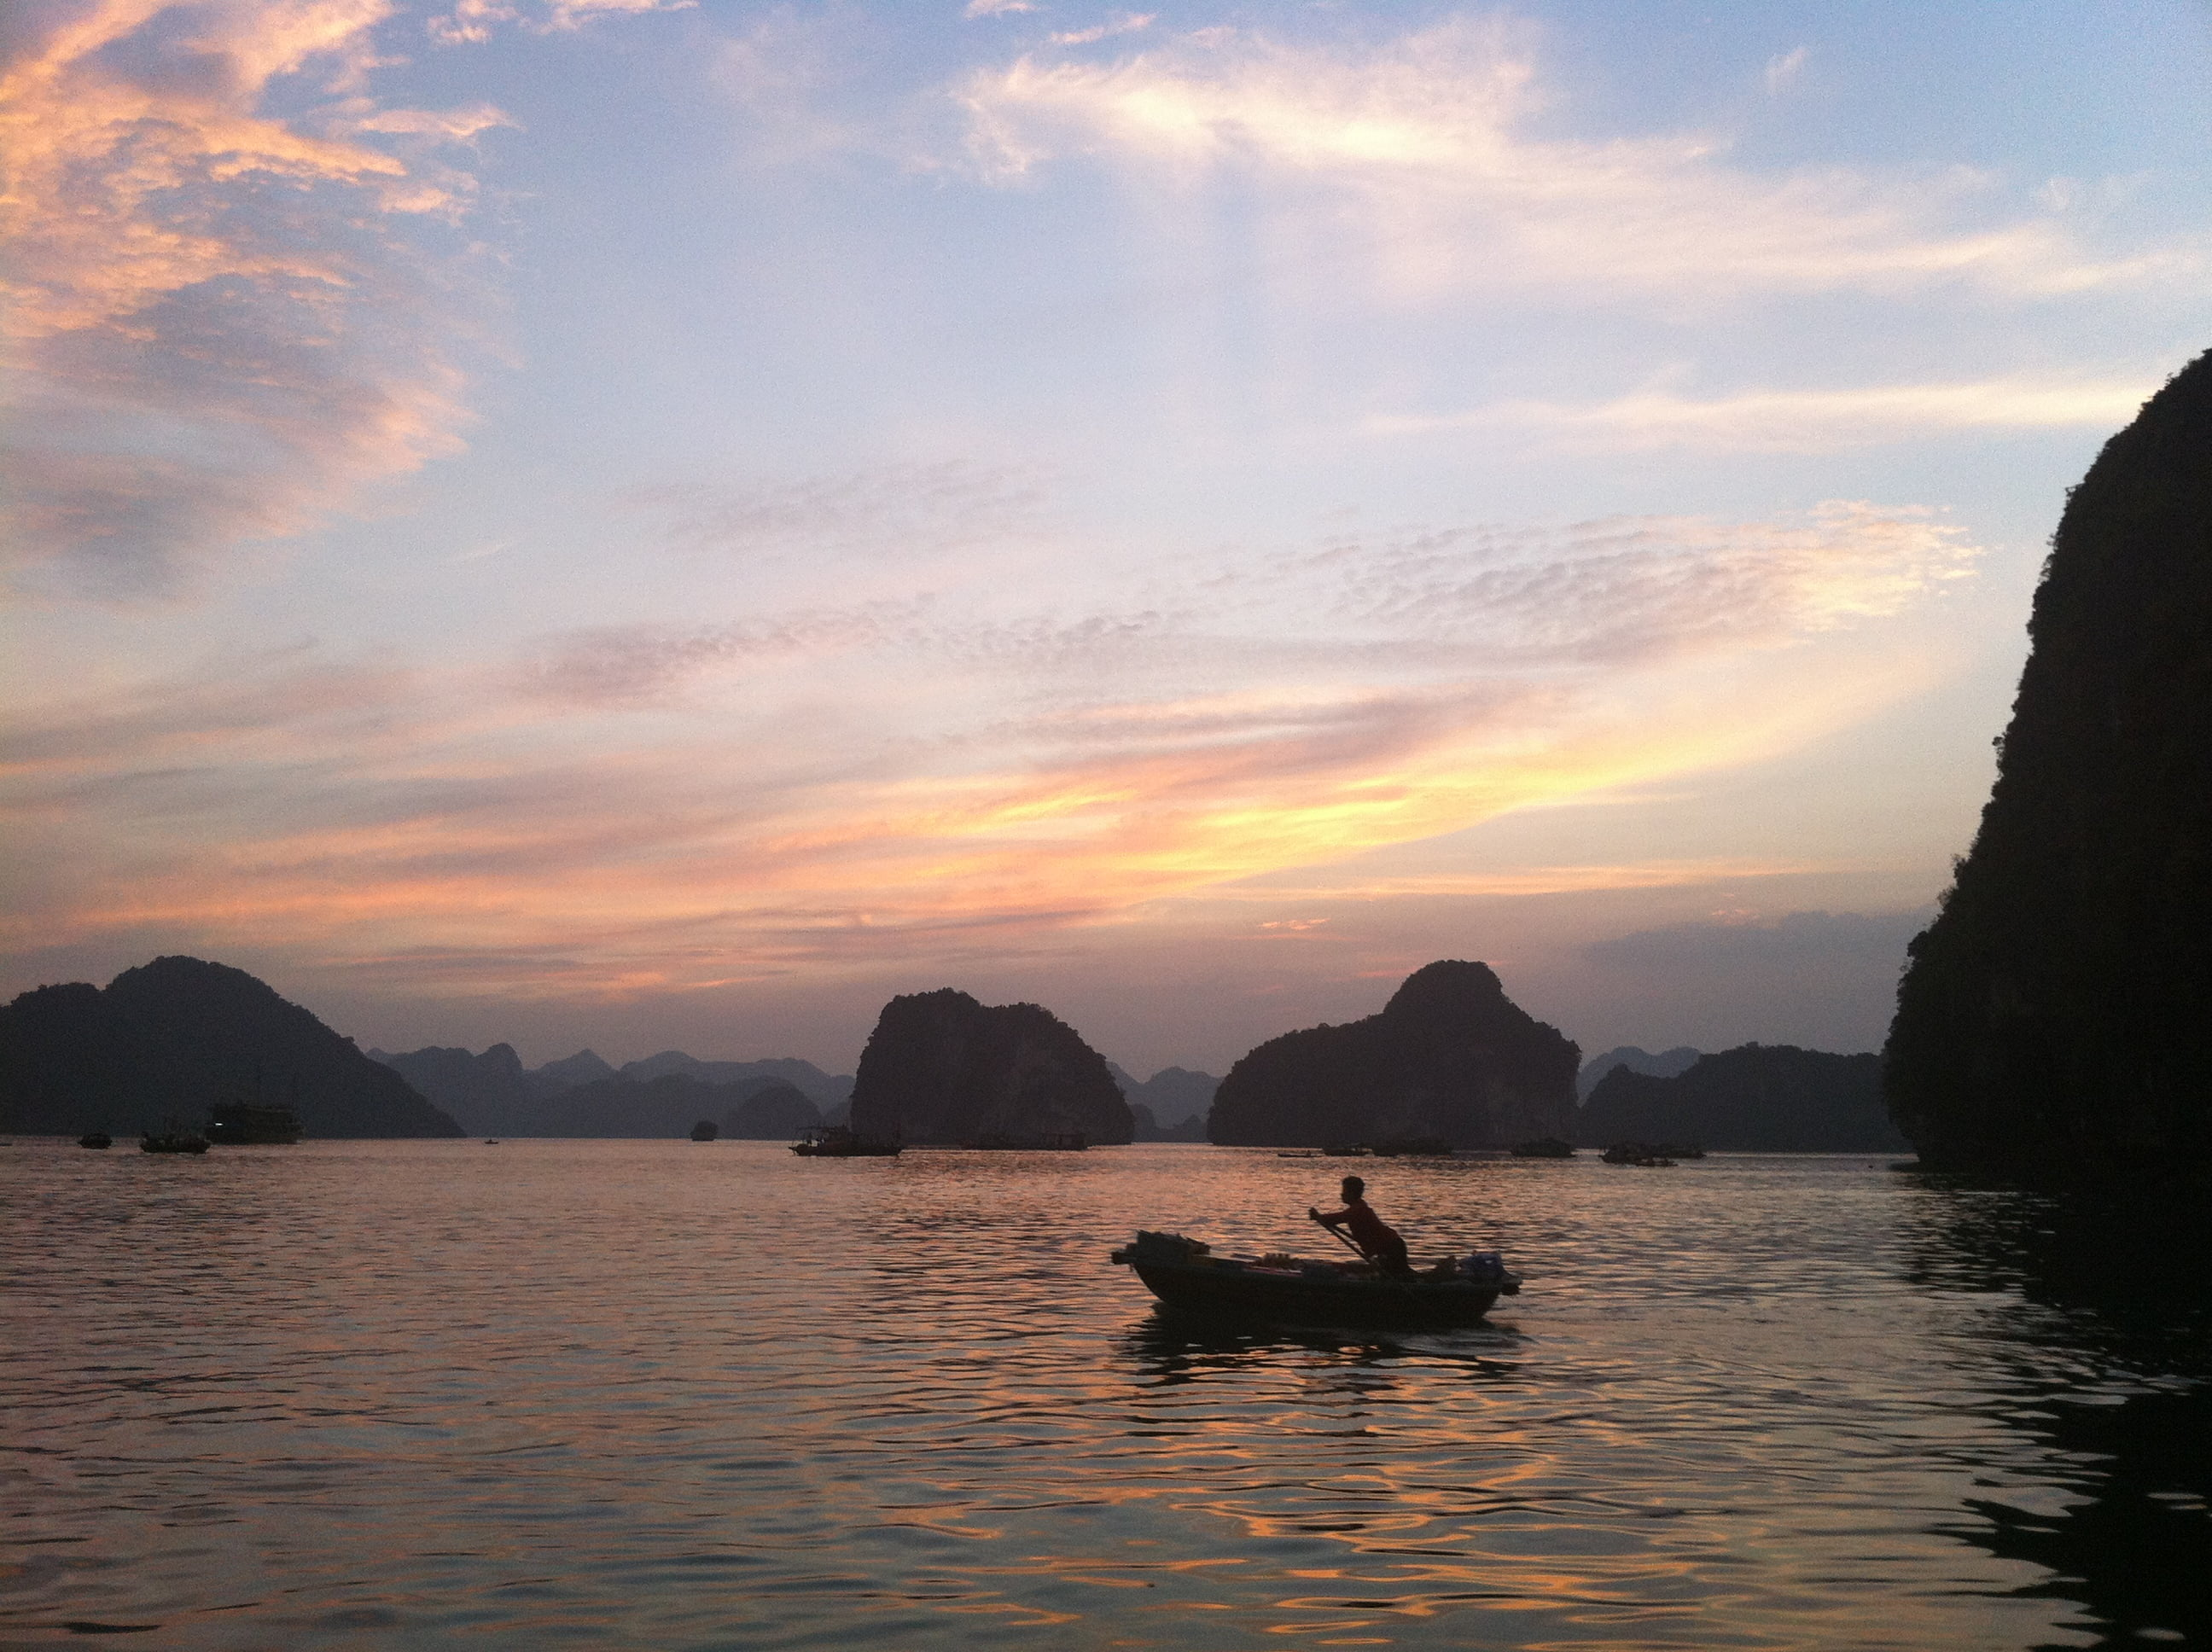 Vietnam Sights – Halong Bay (and a little Anywhere Travel Guiding)